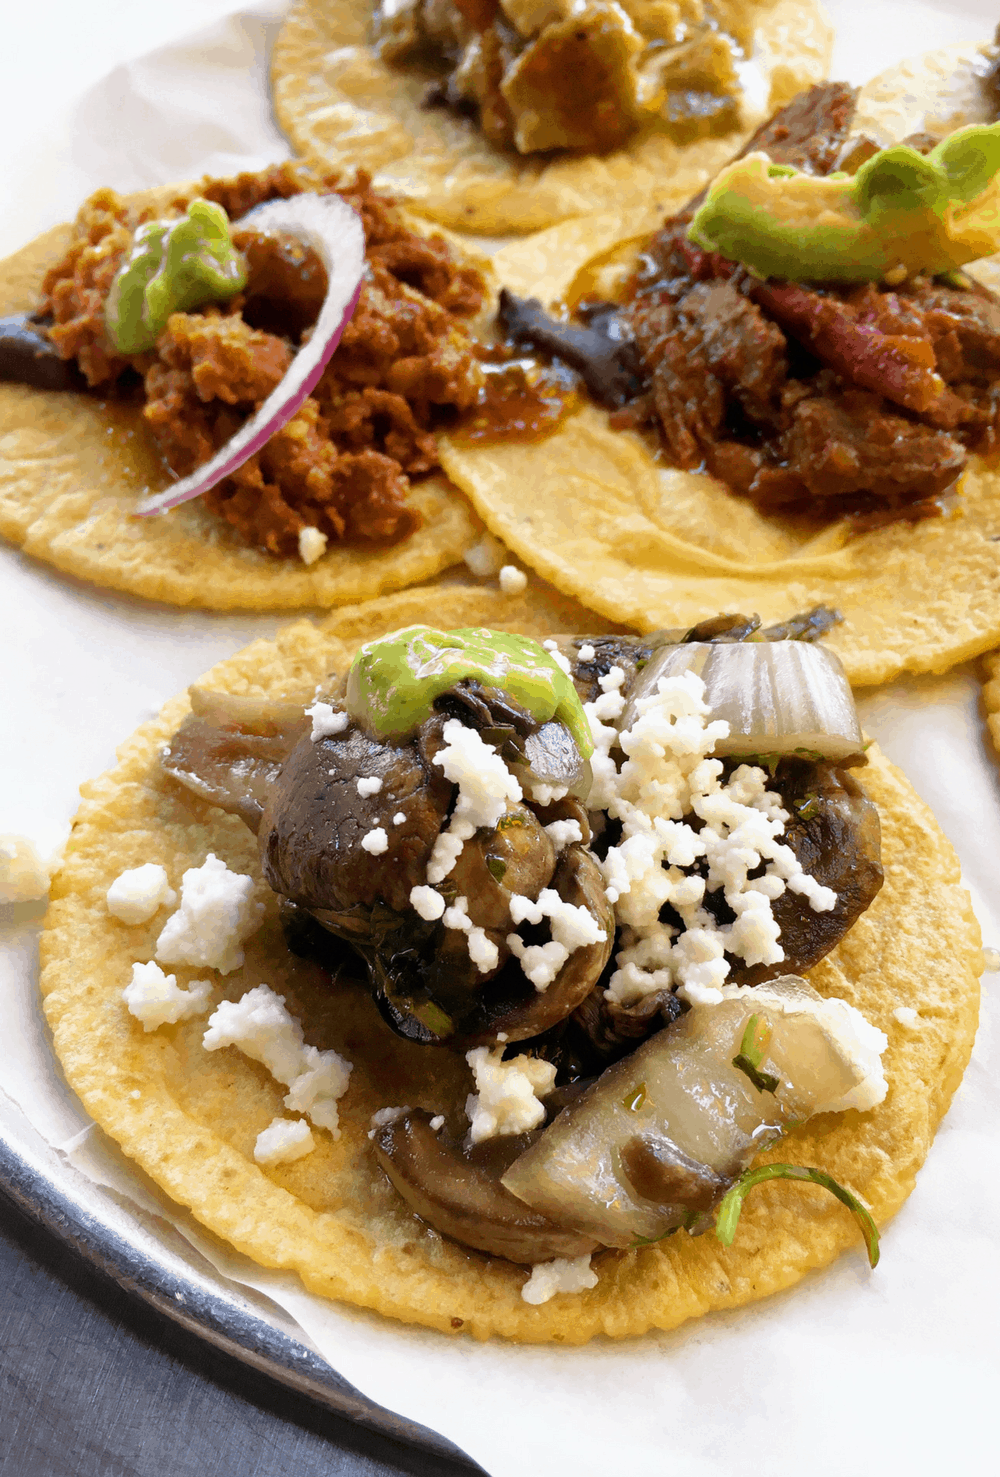 Menu guide on what to order at Guisados in Los Angeles via theothersideofthetortilla.com